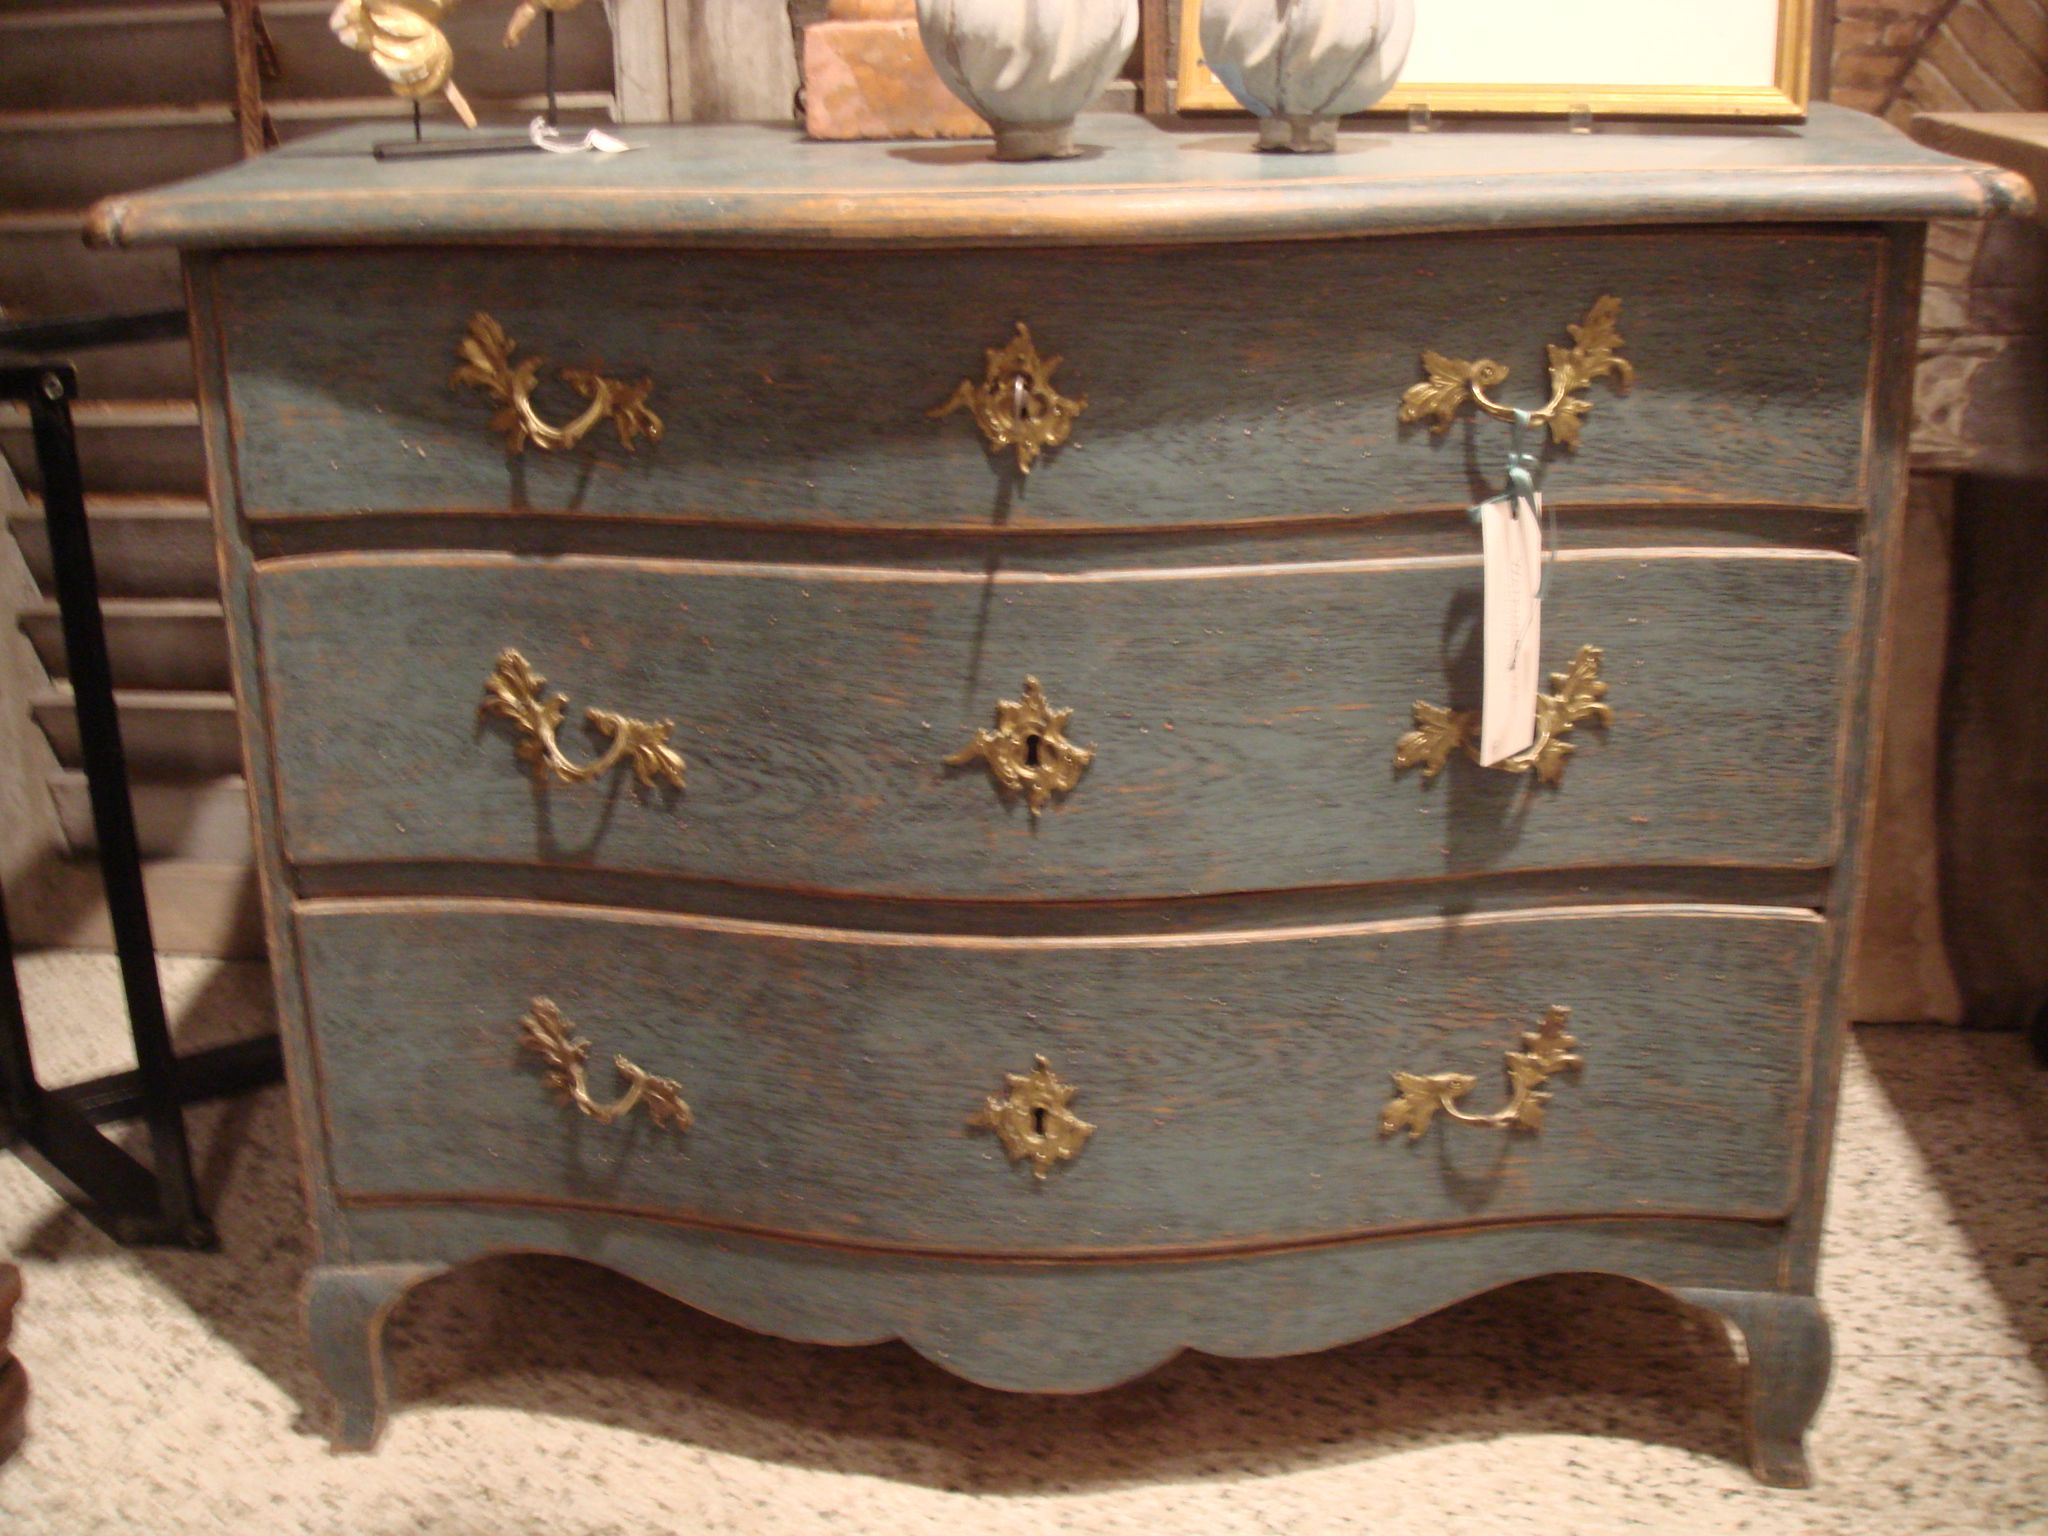 13 Of The Best Ways To Update French Provincial Furniture (With